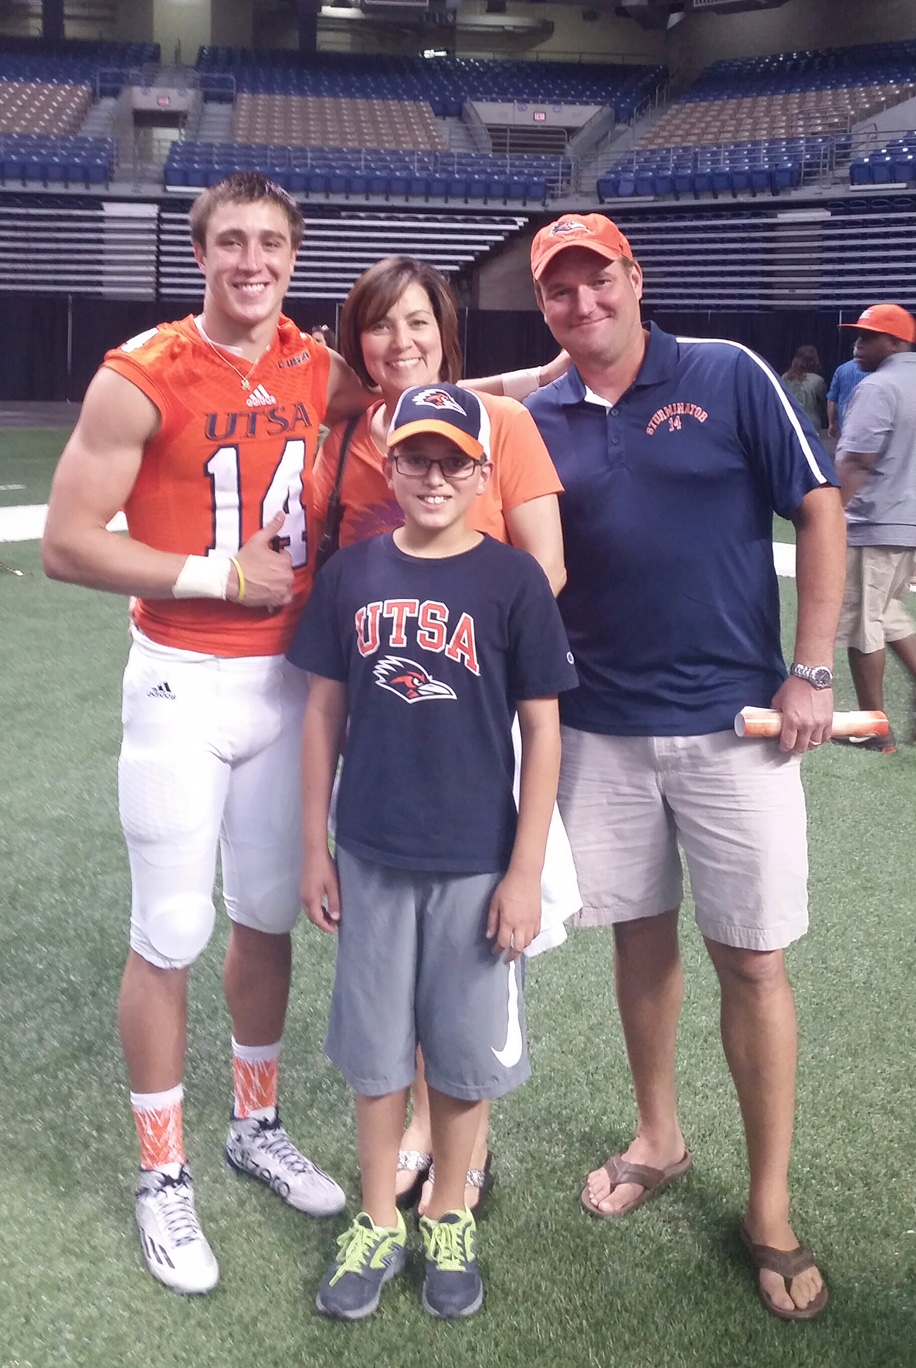 (left to right) Dalton Sturm, Mother Gaylynn Diebel, Stepbrother Peyton Diebel, and his Stepfather Chad Diebel taken in the Alamodome in 2015. Courtesy photo.